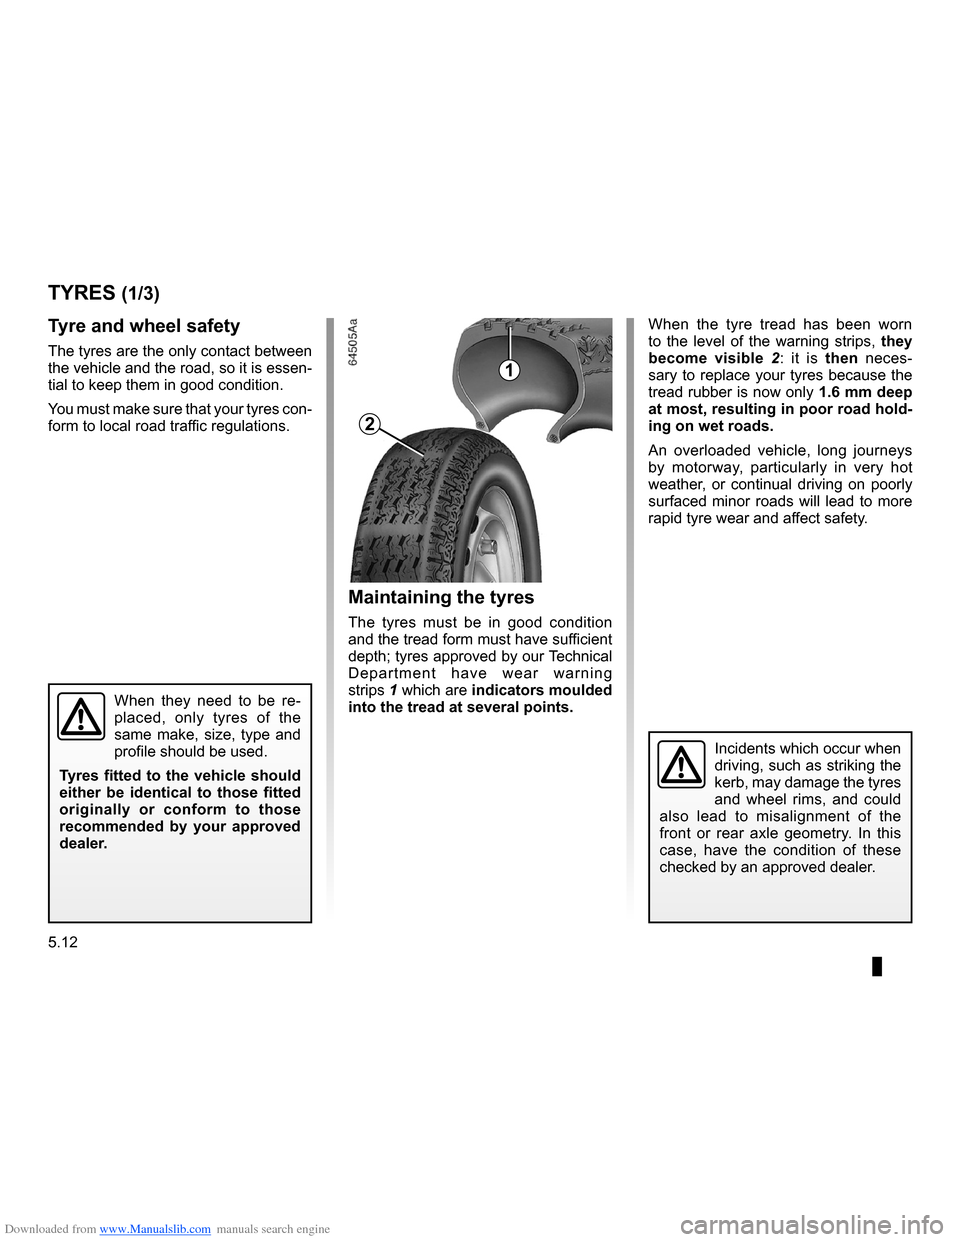 RENAULT CLIO 2009 X85 / 3.G Owners Manual, Page 200